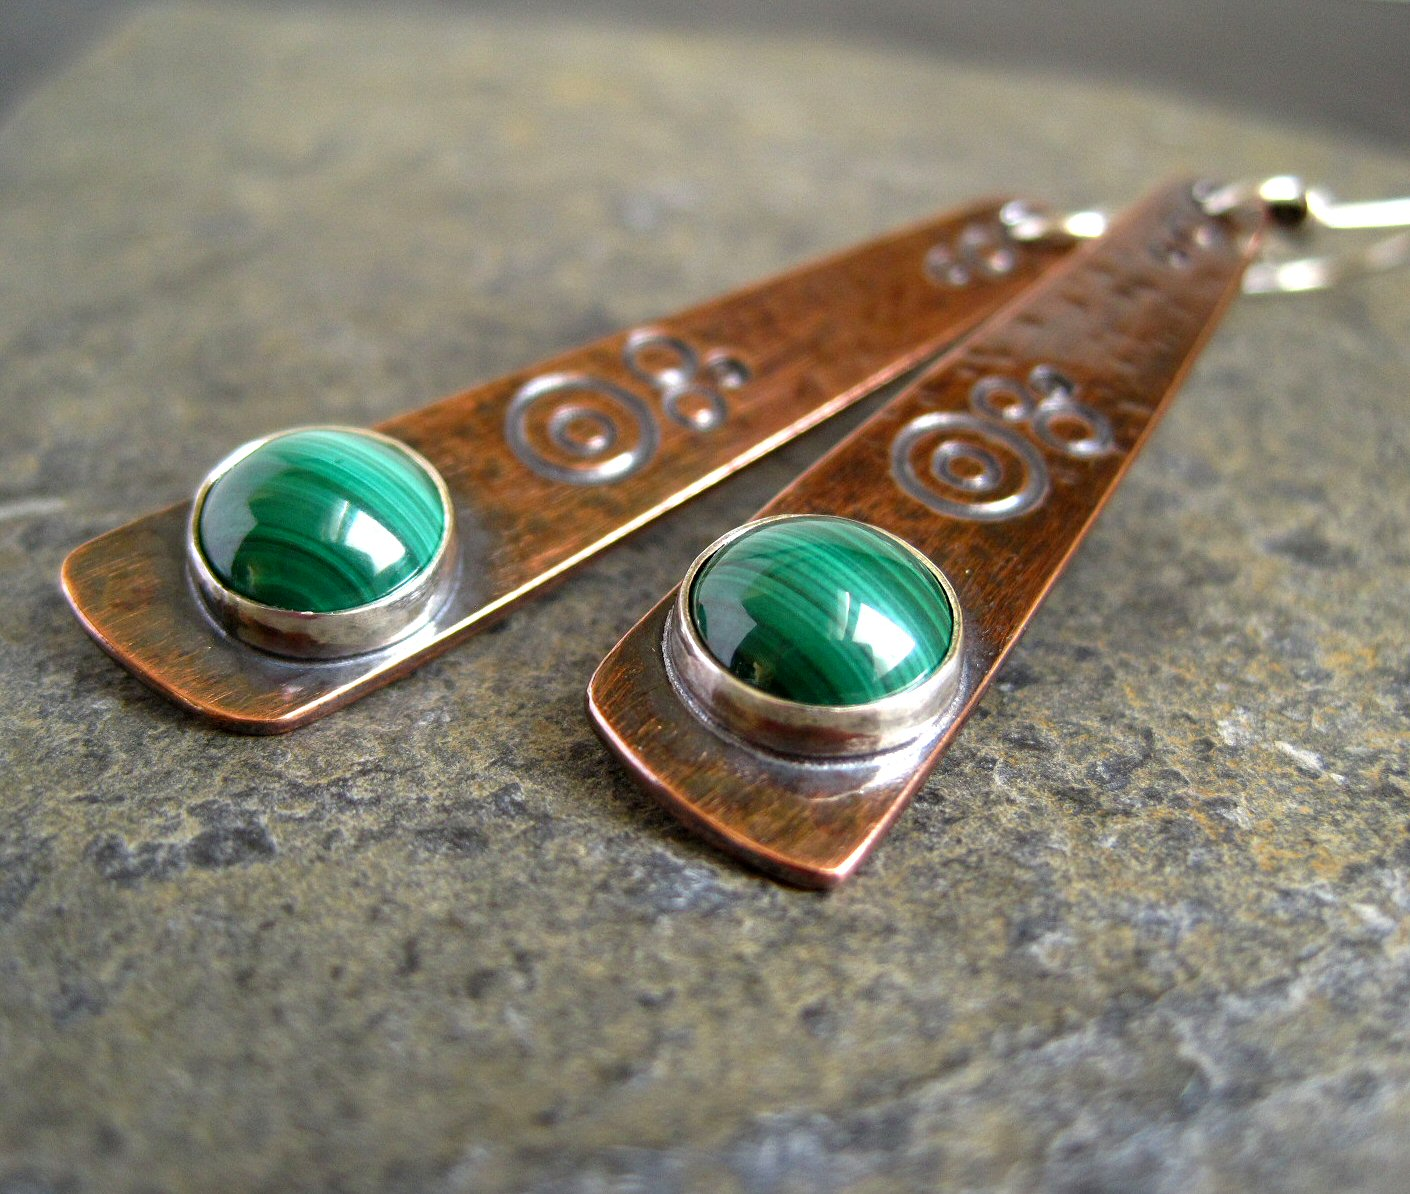 how to clean copper jewelry with stones